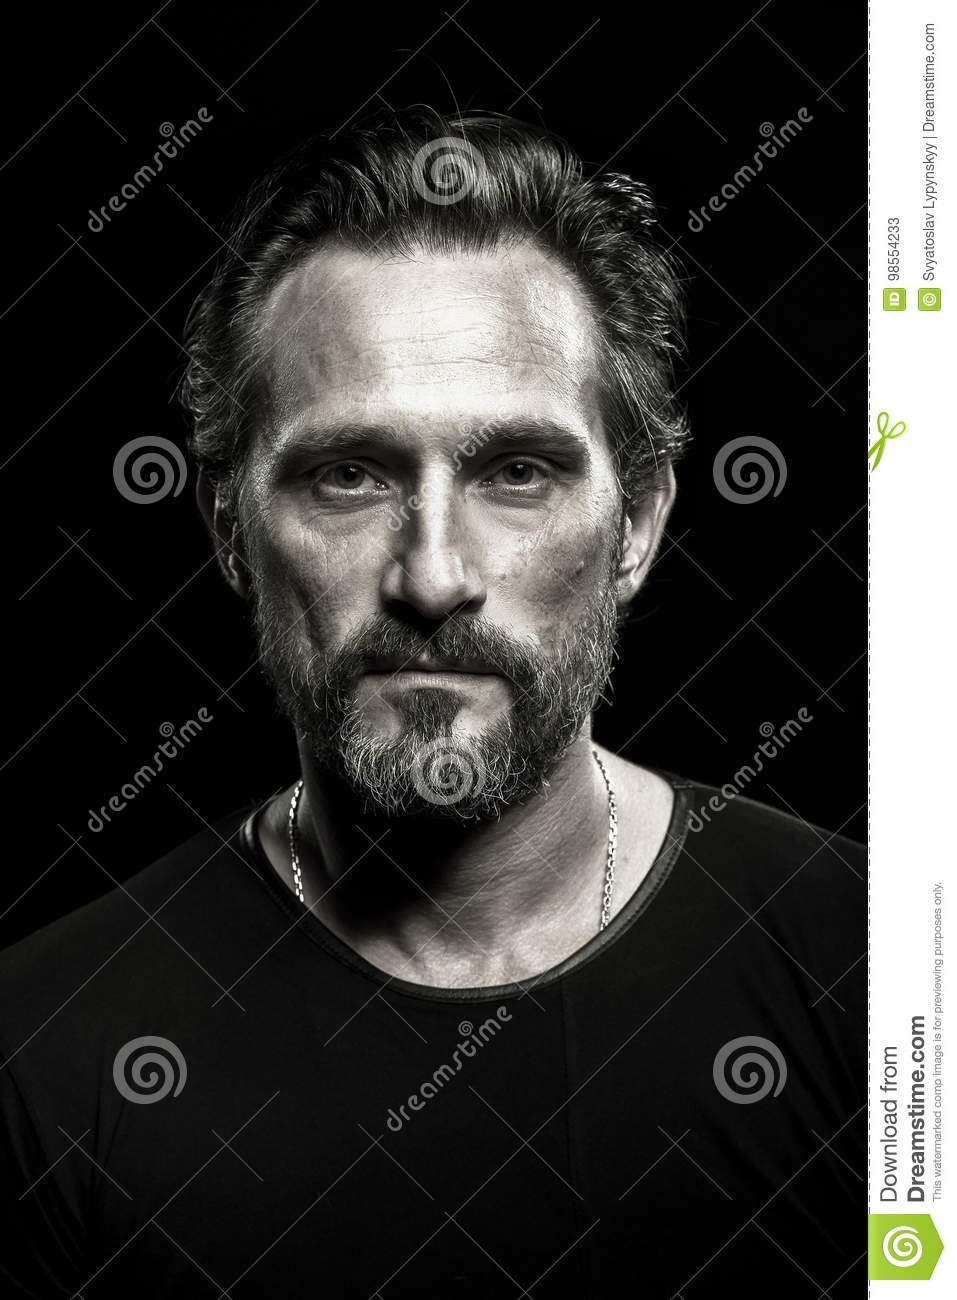 Monochrome portrait of strong mature beardy man.